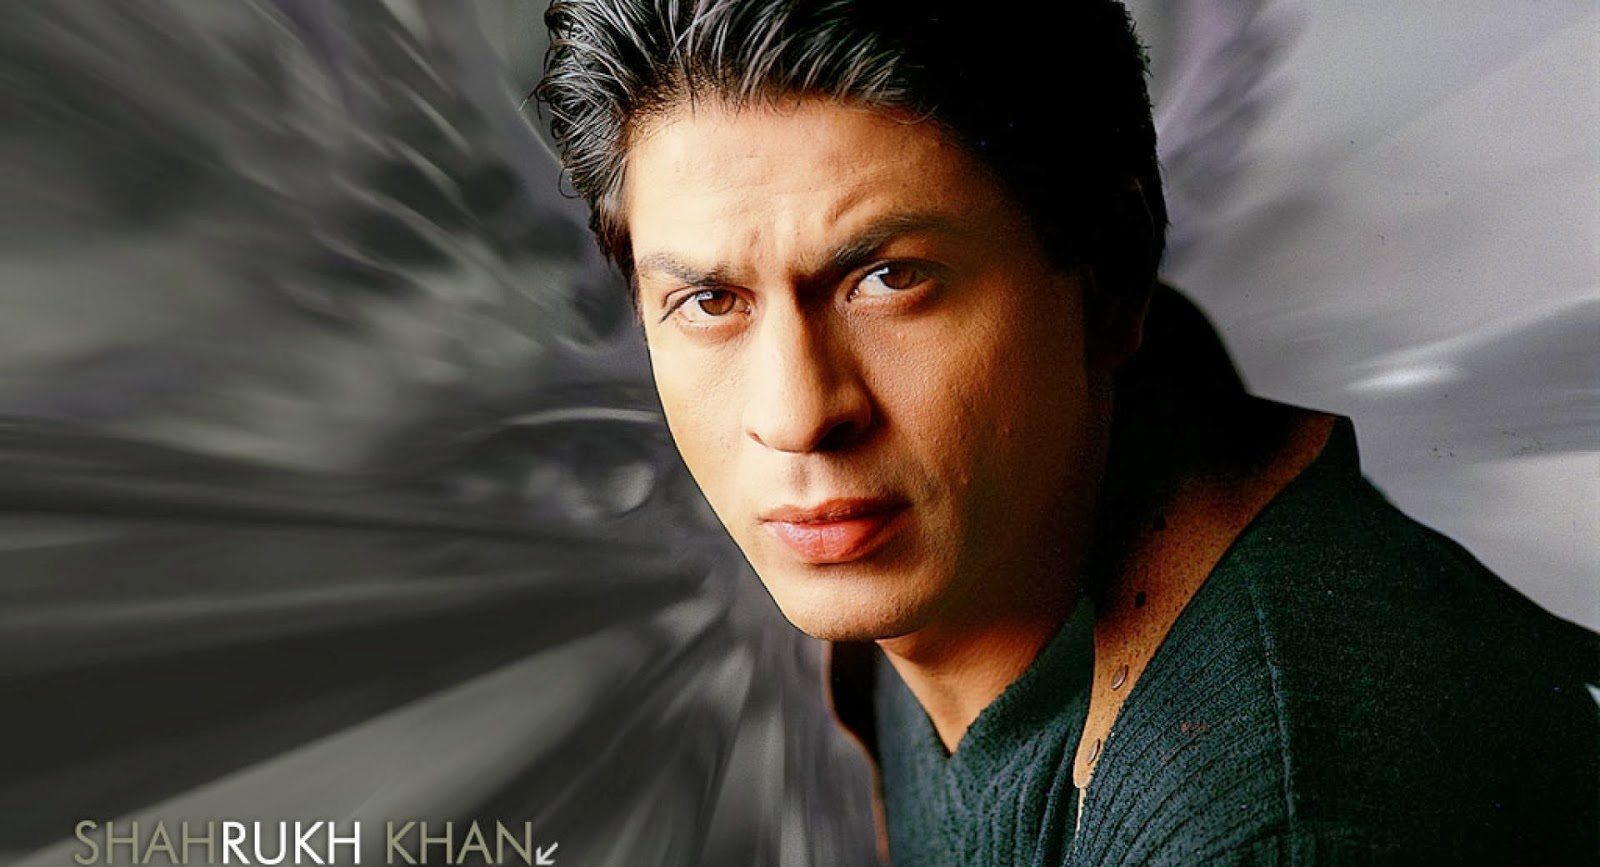 Download Free Hd Wallpapers Of Shahrukh Khan: Star HD Wallpapers Free Download: Shahrukh Khan Hd